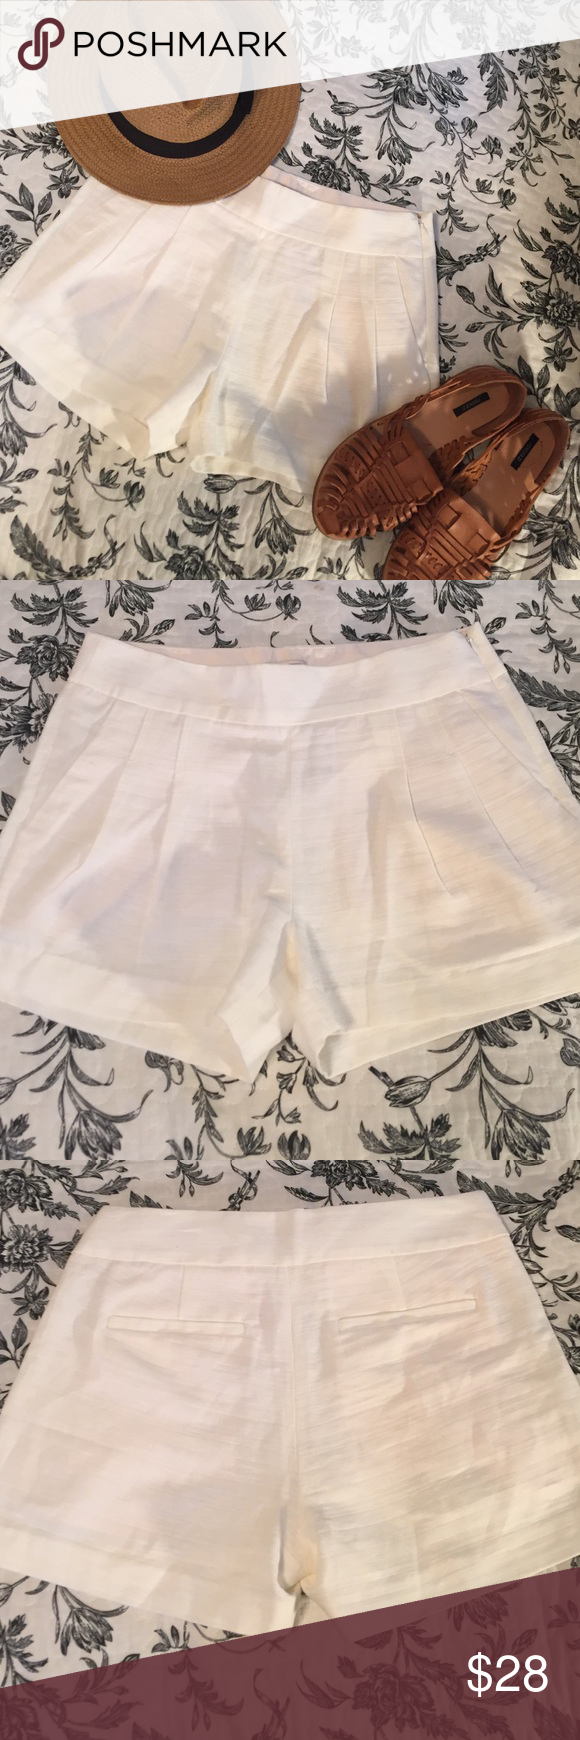 J. Crew Linen Blend Shorts These are the perfect summer shorts. Light and bright linen blend with side zip closure, front and back pockets and fun pleat accents on the front panel. Size 0 but fits more like a sz 2. Brand new with tags, perfect condition. J. Crew Shorts Skorts